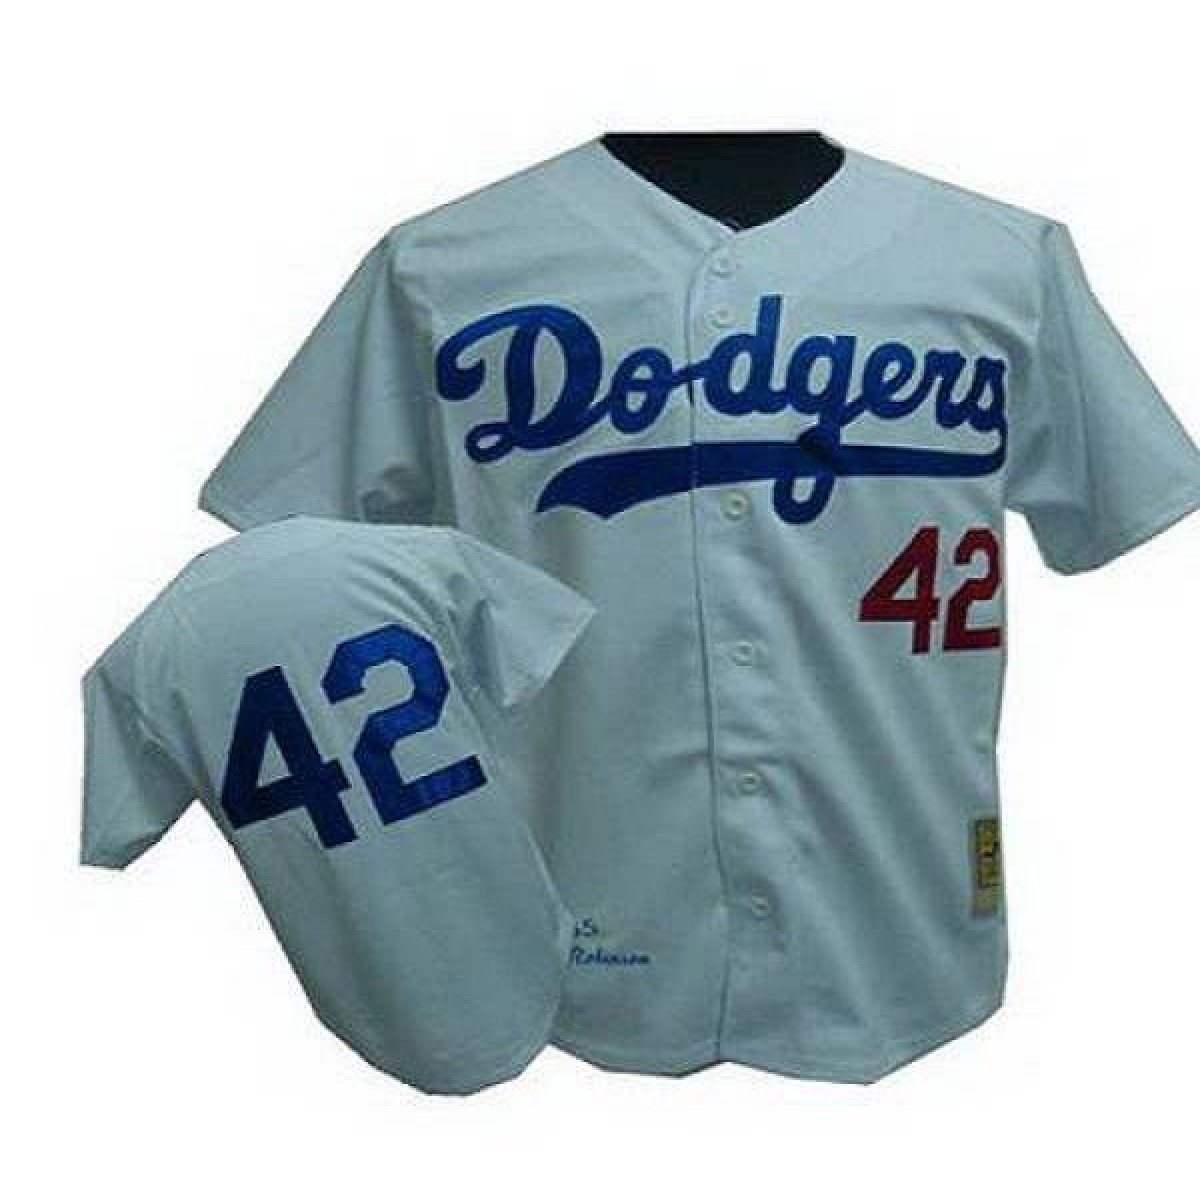 reputable site 53e38 dedbf MLB Dodgers 42 Jackie Robinson White Throwback Mitchell And Ness Men Jersey